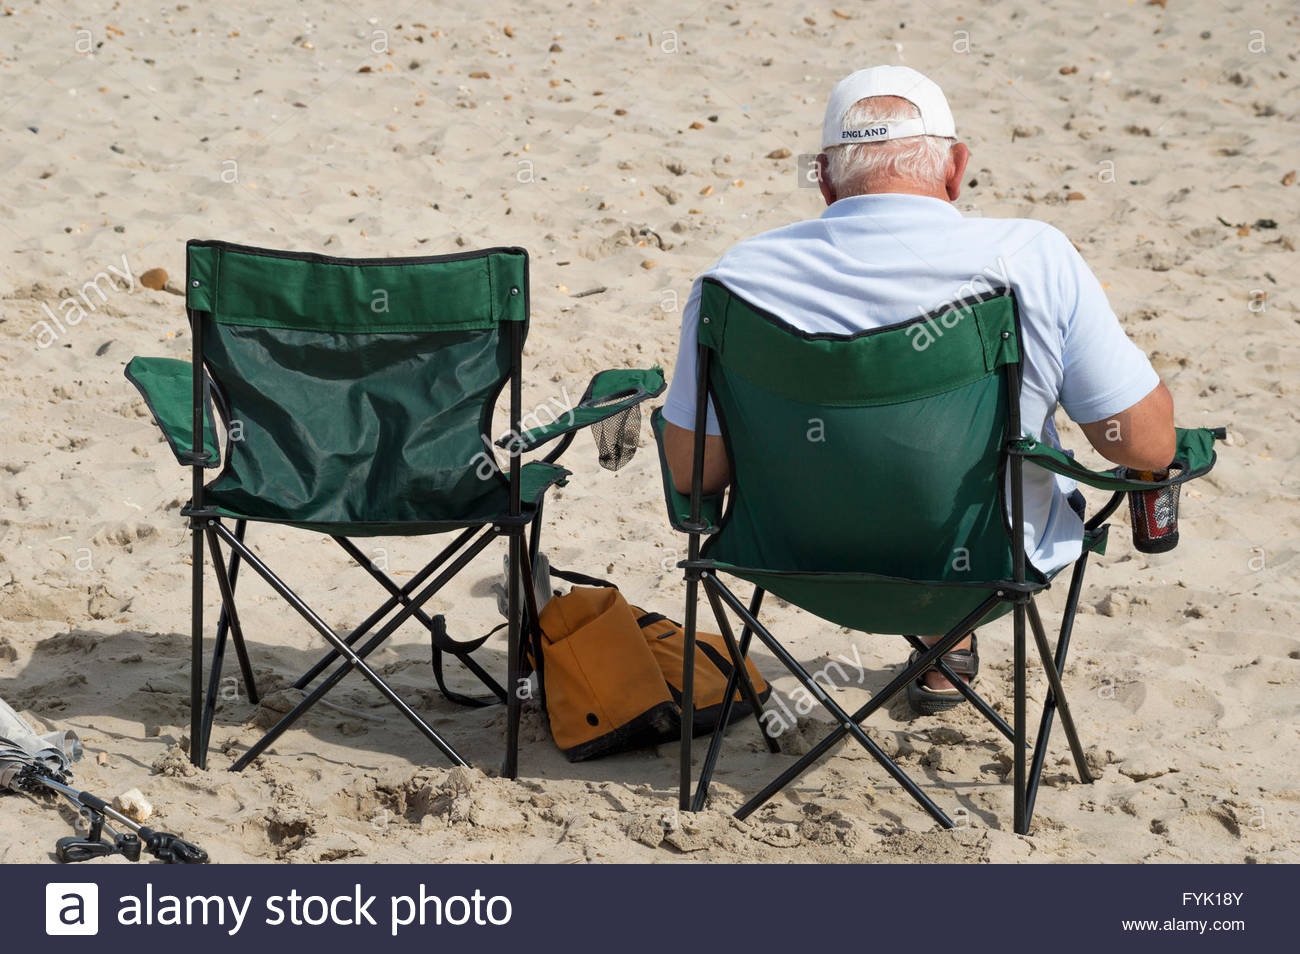 Astounding Older Man Sitting On The Beach In A Camping Chair Mudeford Cjindustries Chair Design For Home Cjindustriesco